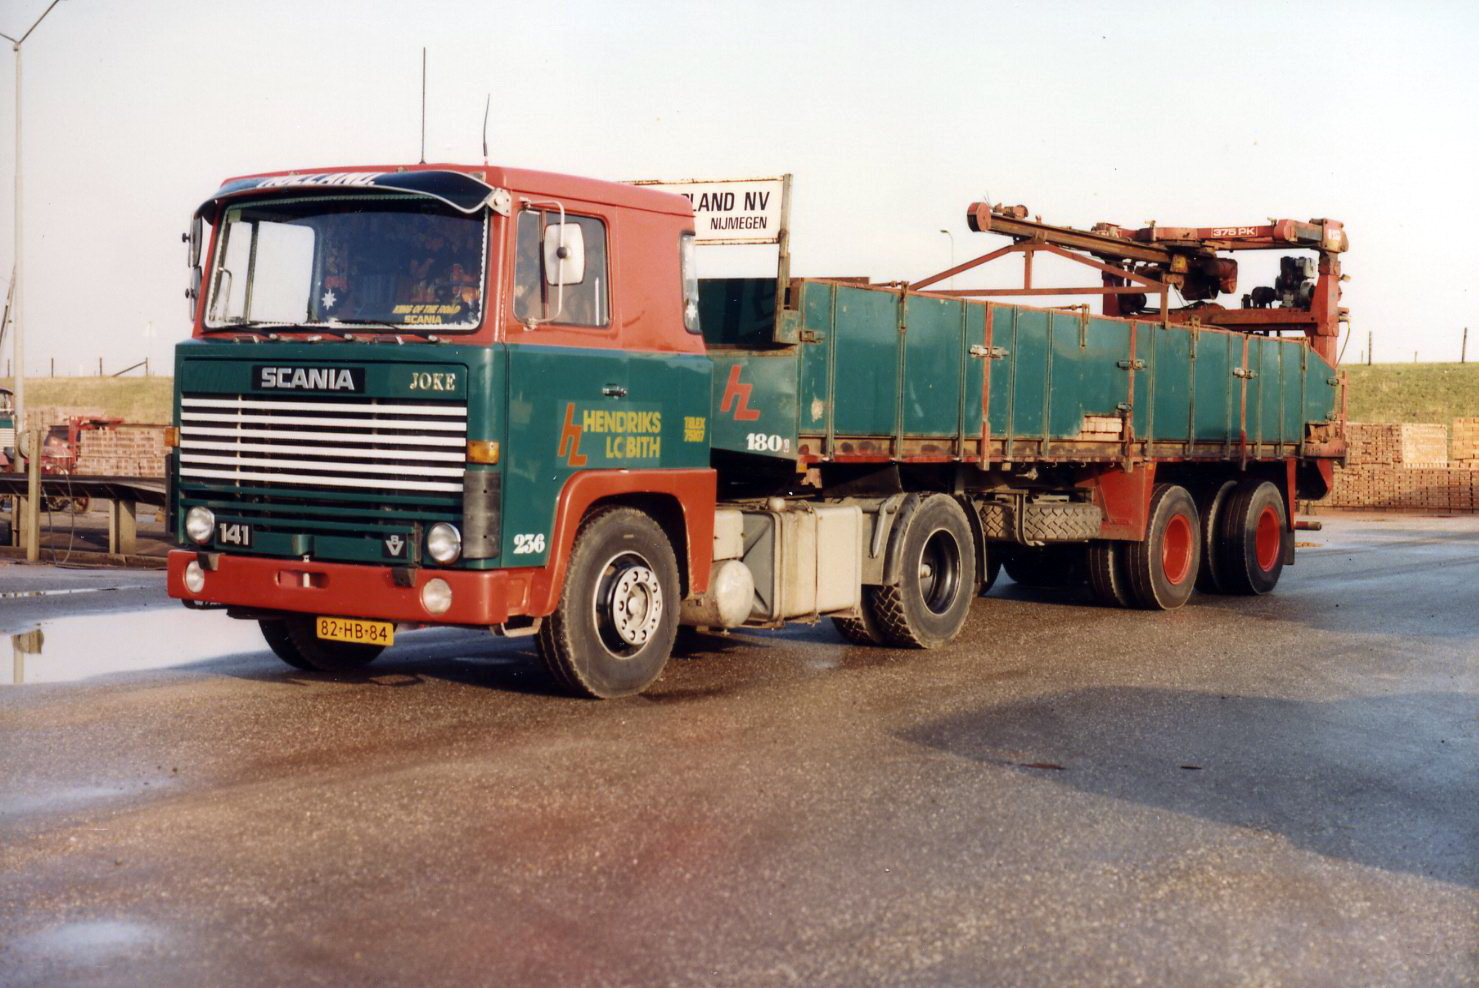 Hendriks-Lobith-Scania-LB141-82HB84